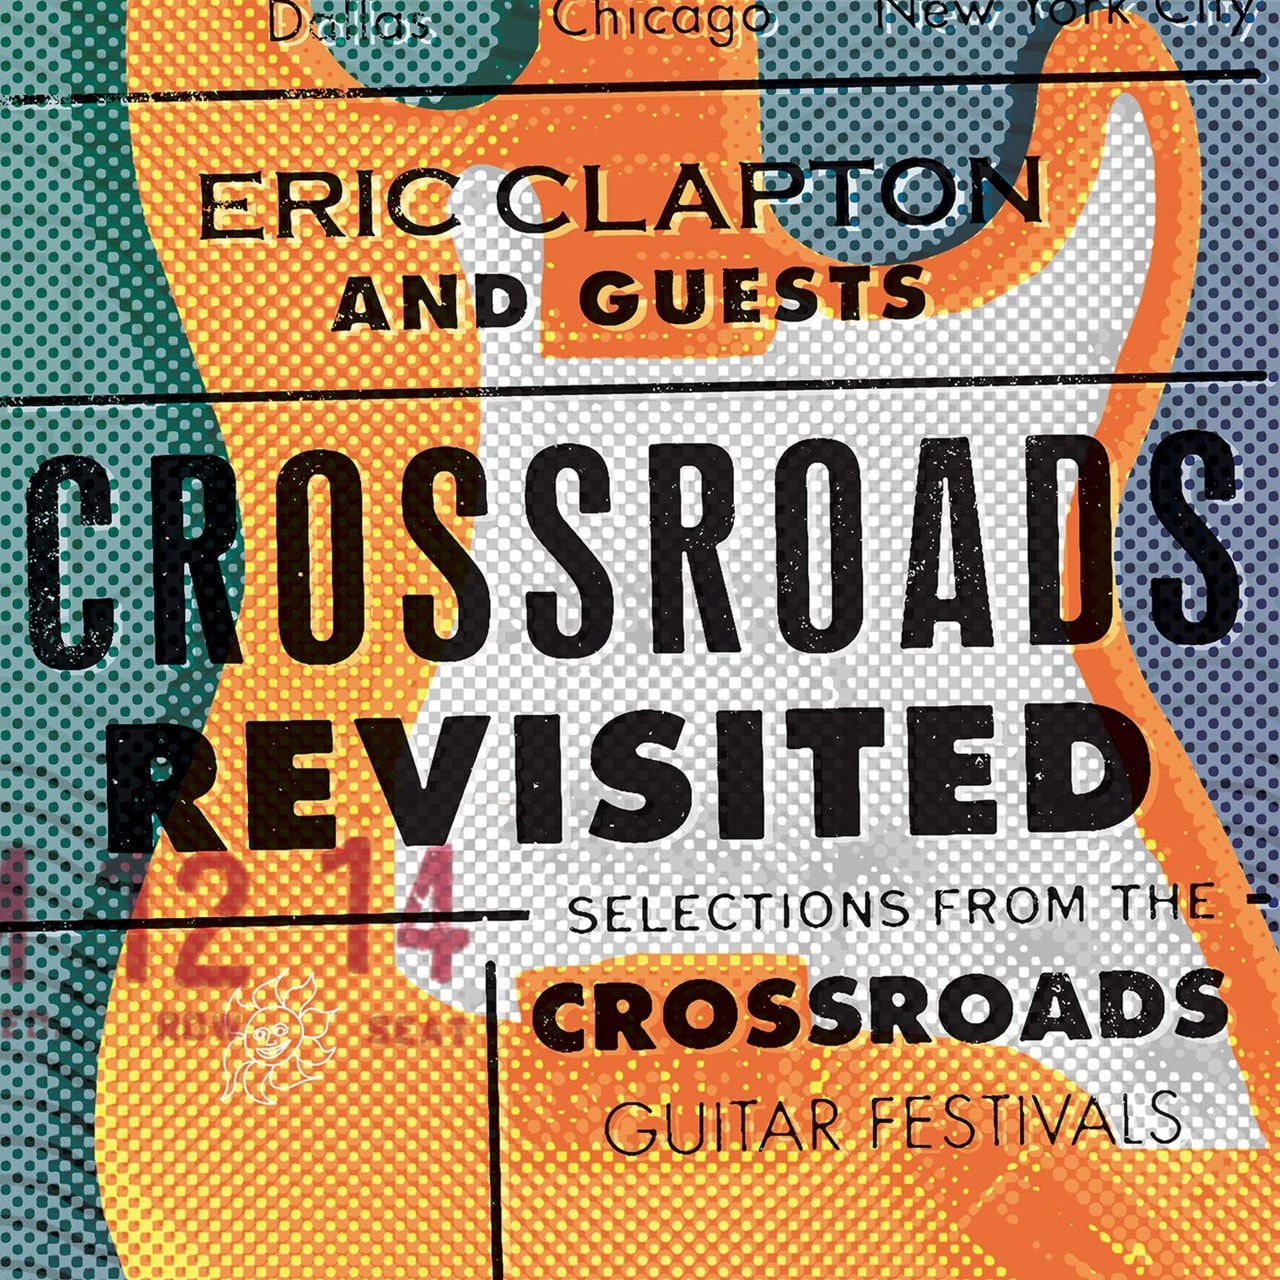 Crossroads Revisited: Selections from the Crossroads Guitar Festivals - 1